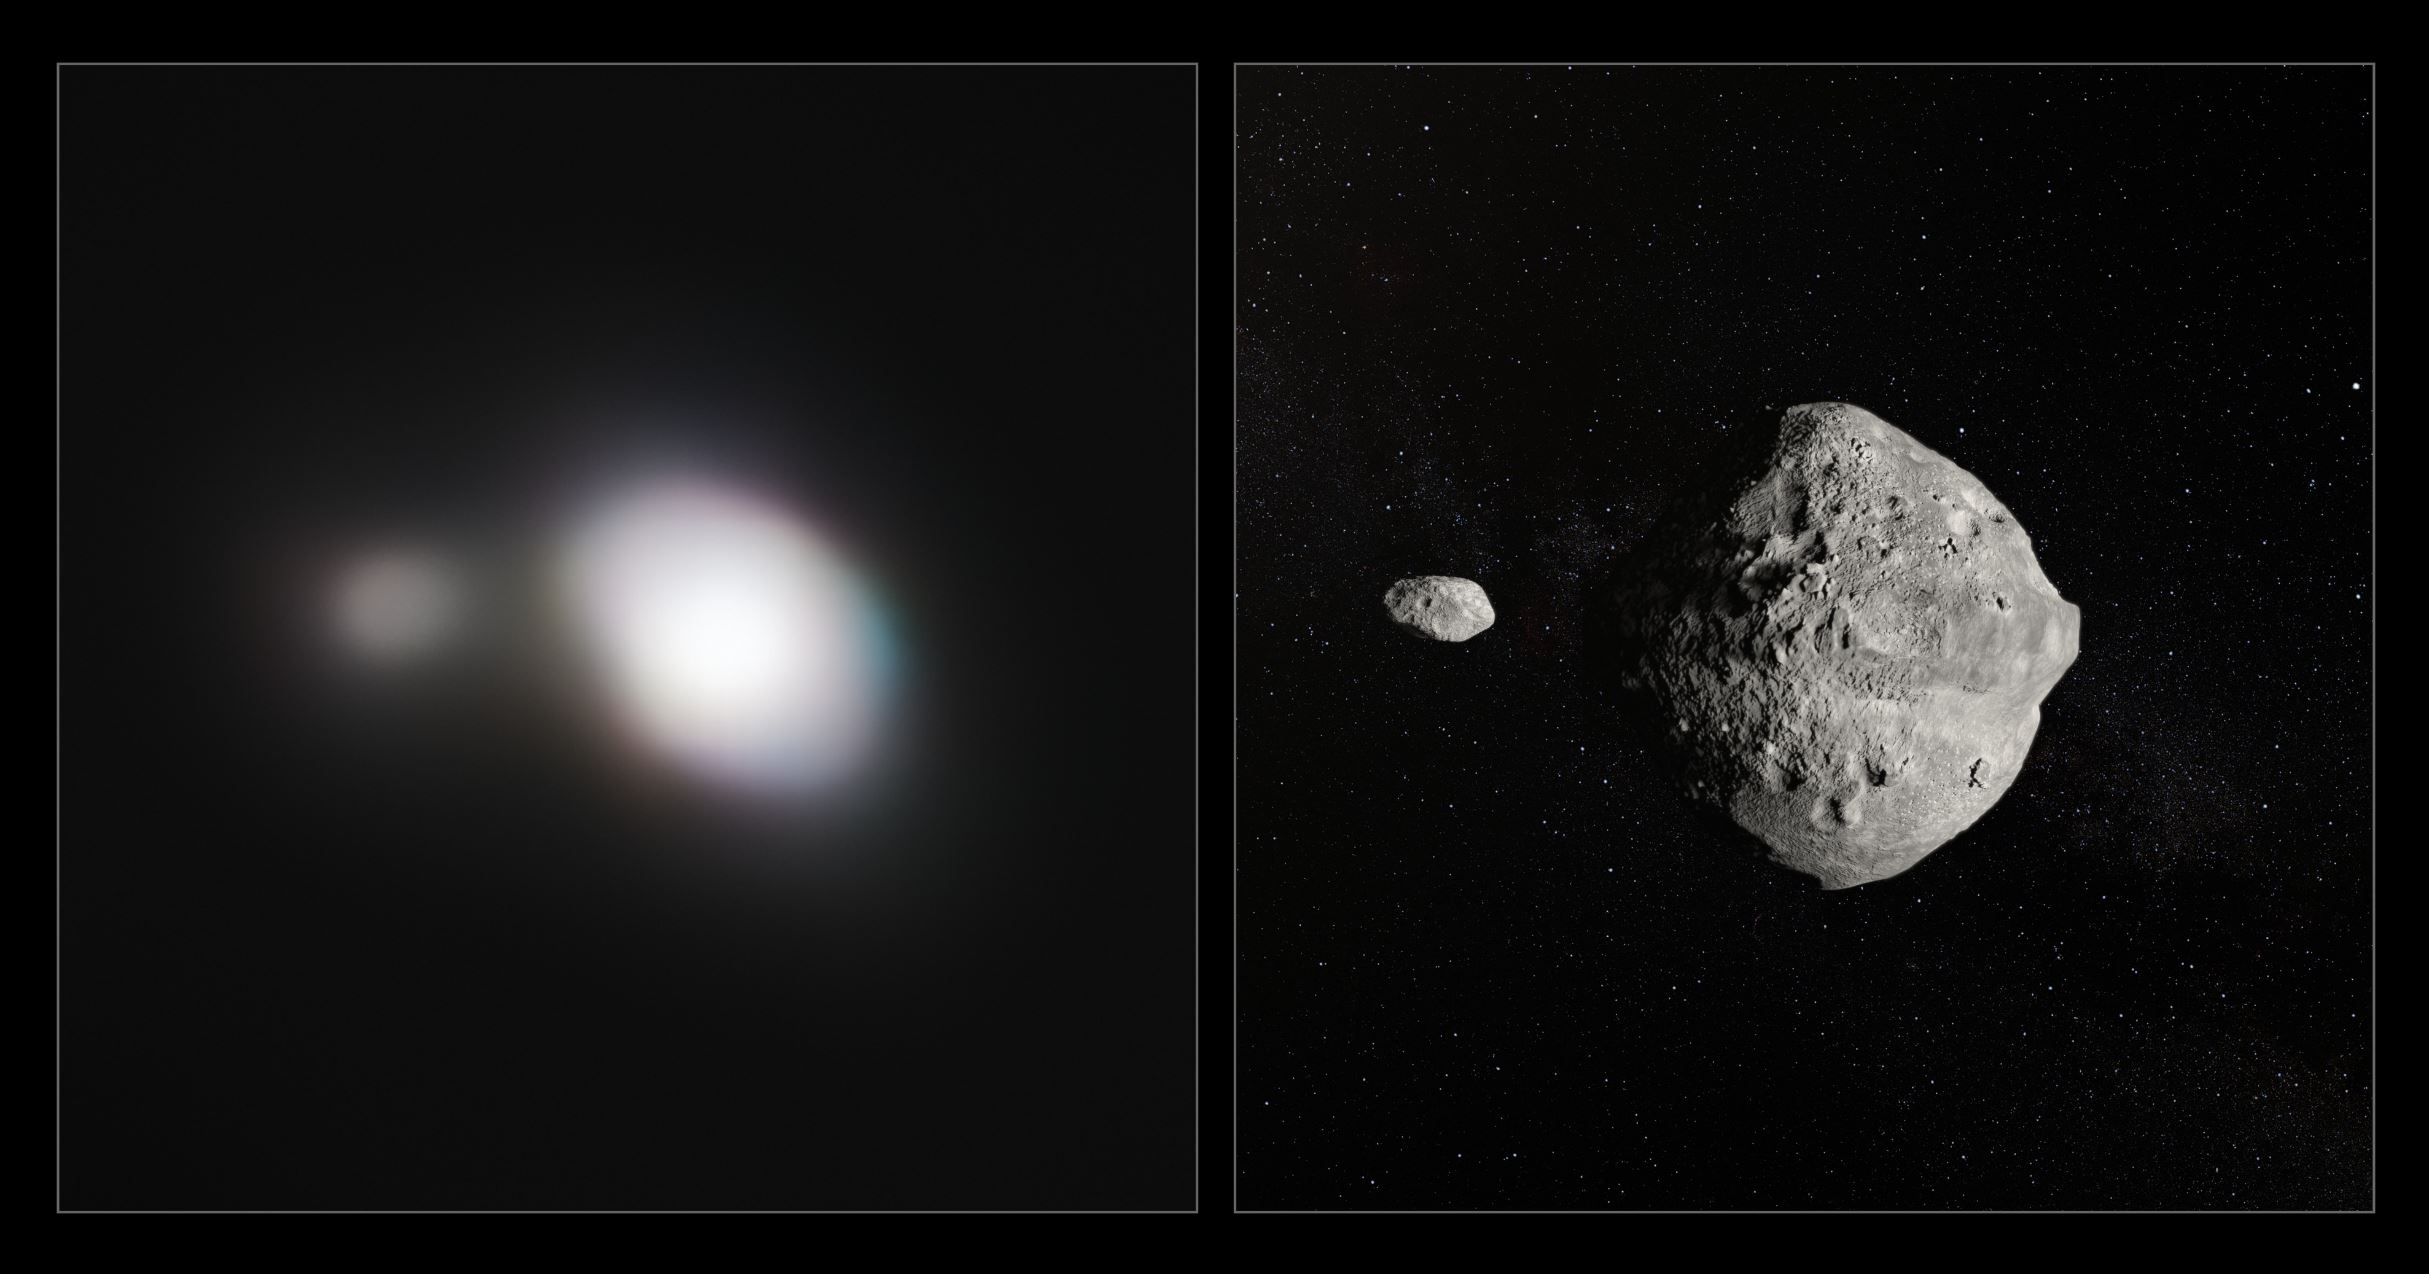 The unique capabilities of the SPHERE instrument on ESO's Very Large Telescope have enabled it to obtain the sharpest images of a double asteroid as it flew by Earth on 25 May. While this double asteroid was not itself a threatening object, scientists used the opportunity to rehearse the response to a hazardous Near-Earth Object (NEO), proving that ESO's front-line technology could be critical in planetary defence.  The left-hand image shows SPHERE observations of Asteroid 1999 KW4. The angular resolution in this image is equivalent to picking out a single building in New York — from Paris. An artist's impression of the asteroid pair is shown on the right. - Credit: ESO